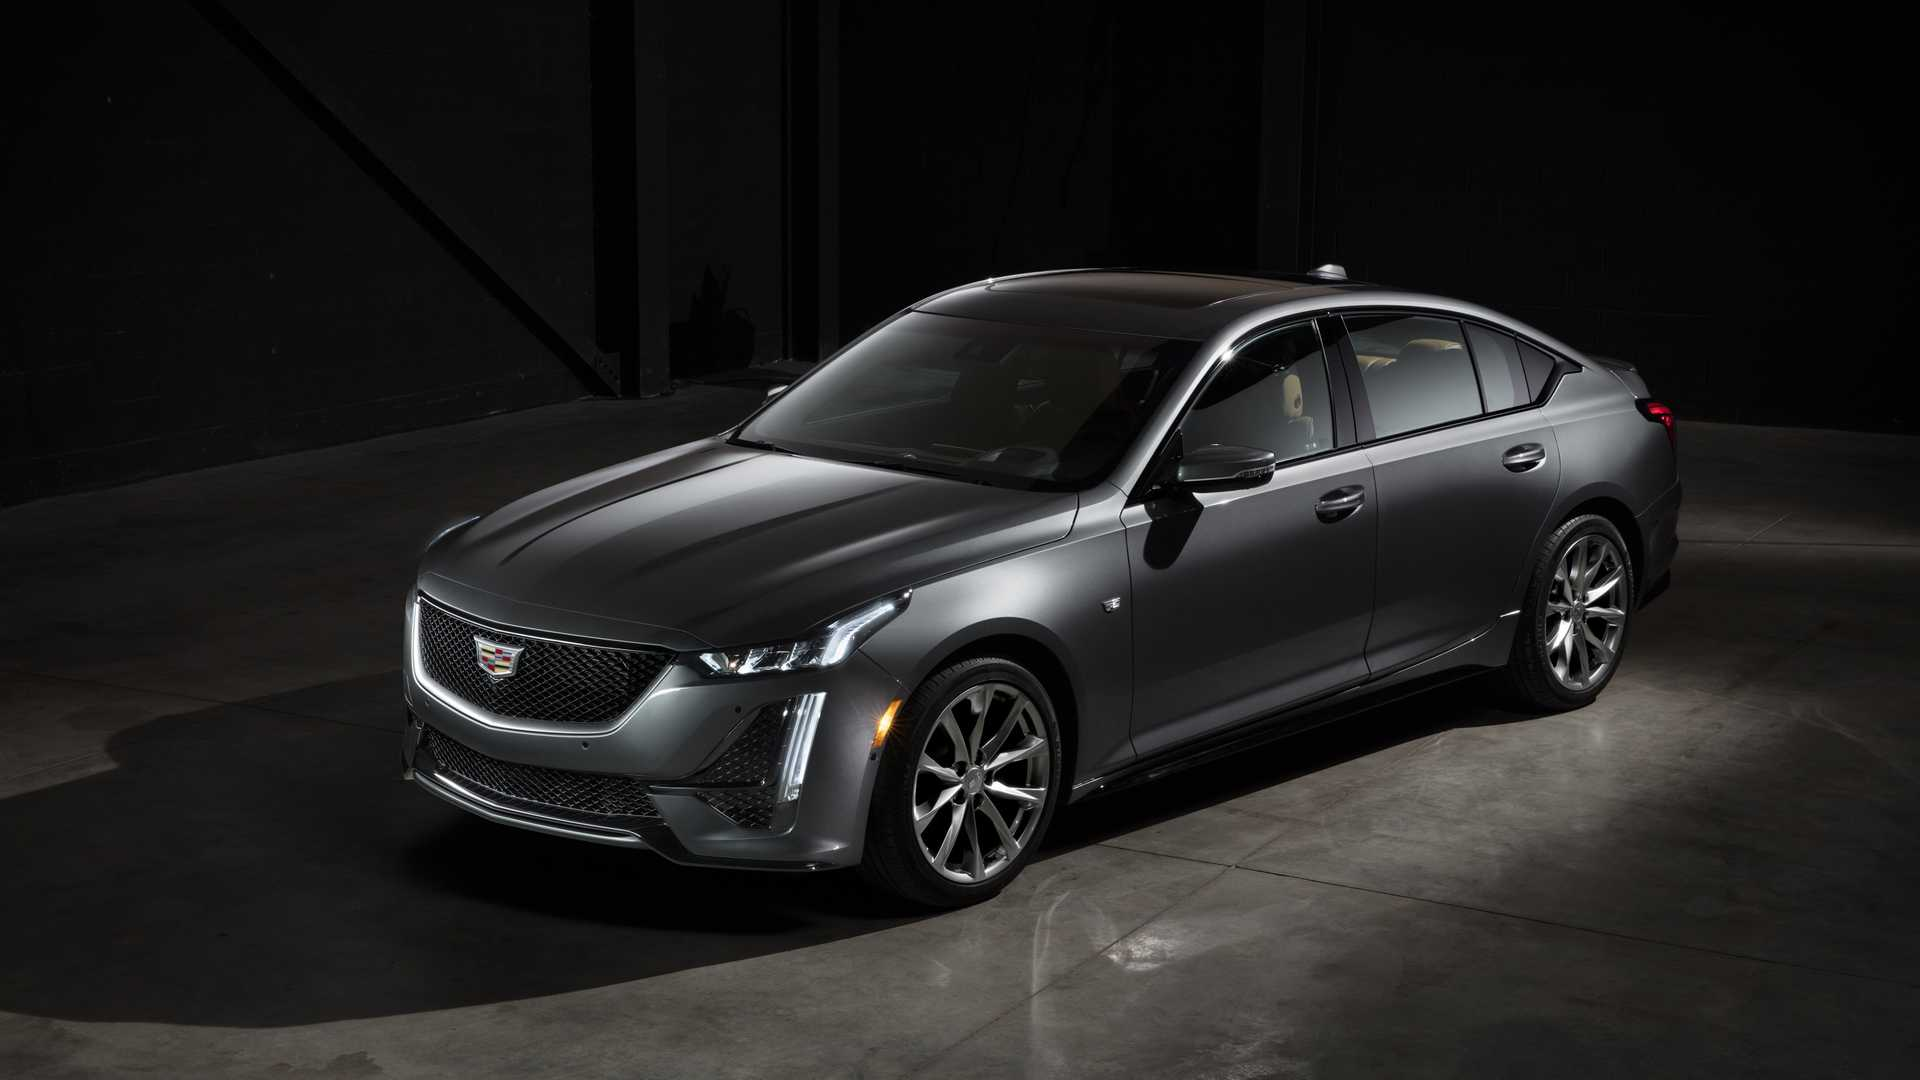 Car manufacturer Cadillac has unveiled its new CT5 sedan/saloon scheduled for international premiere on April 16, 2019